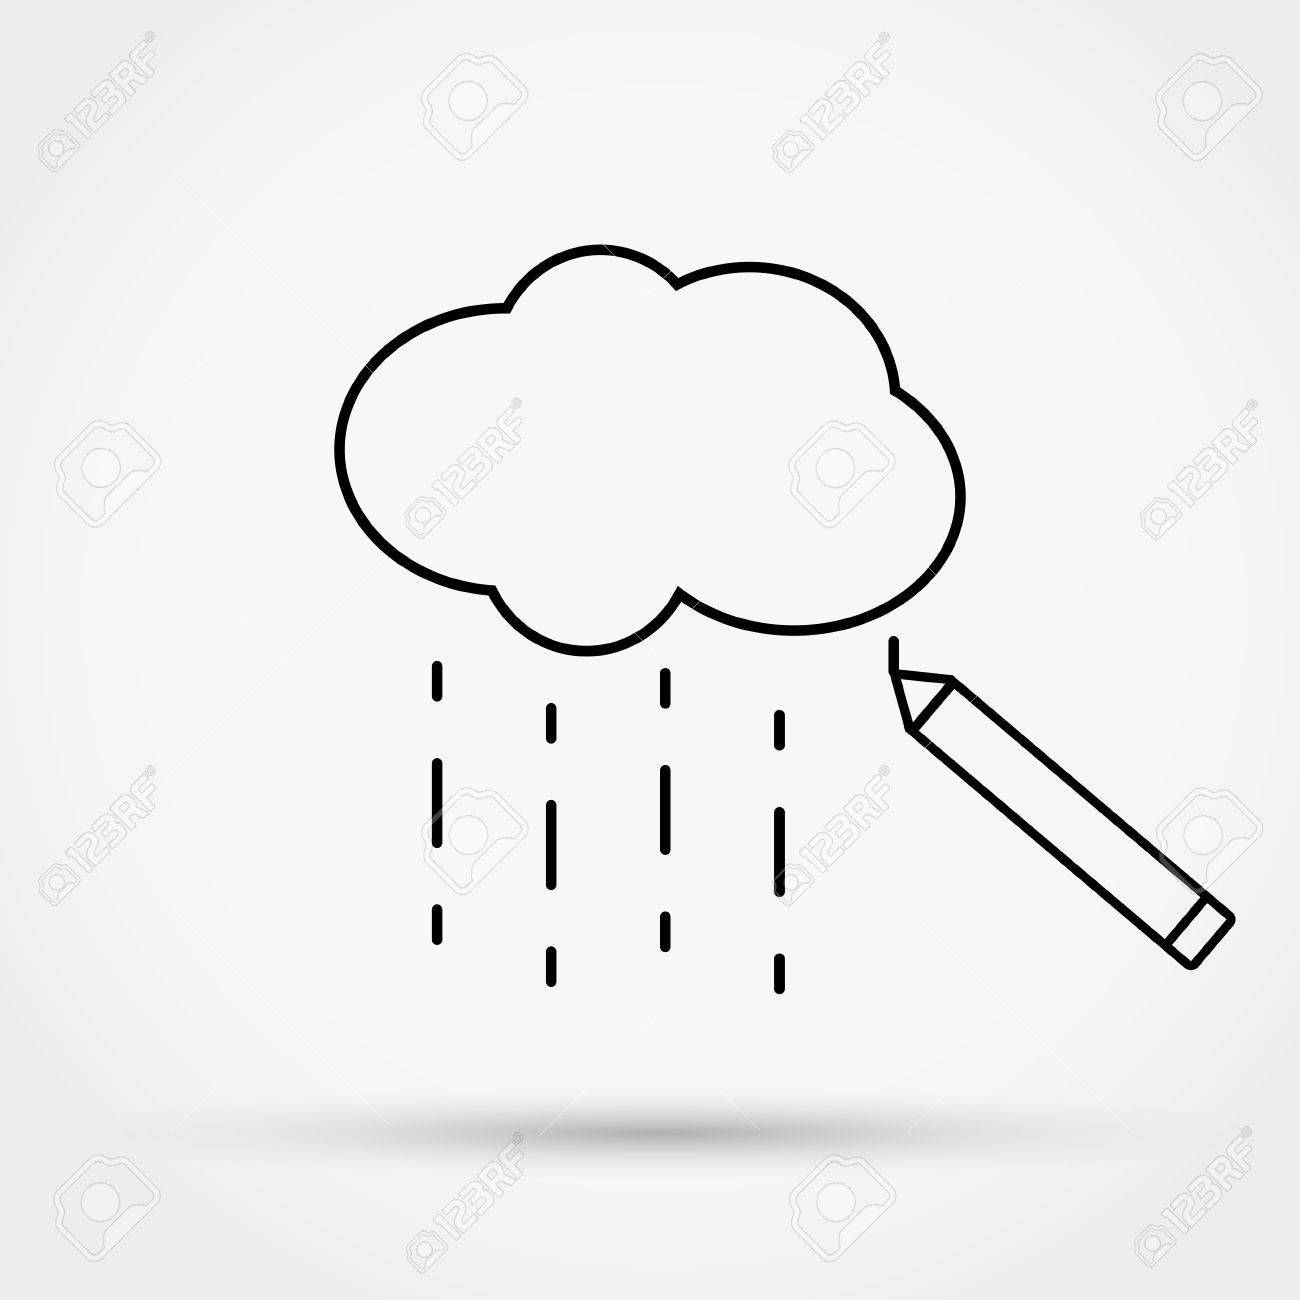 Pencil drawing cloud with rain outline simple flat icon vector illustration stock vector